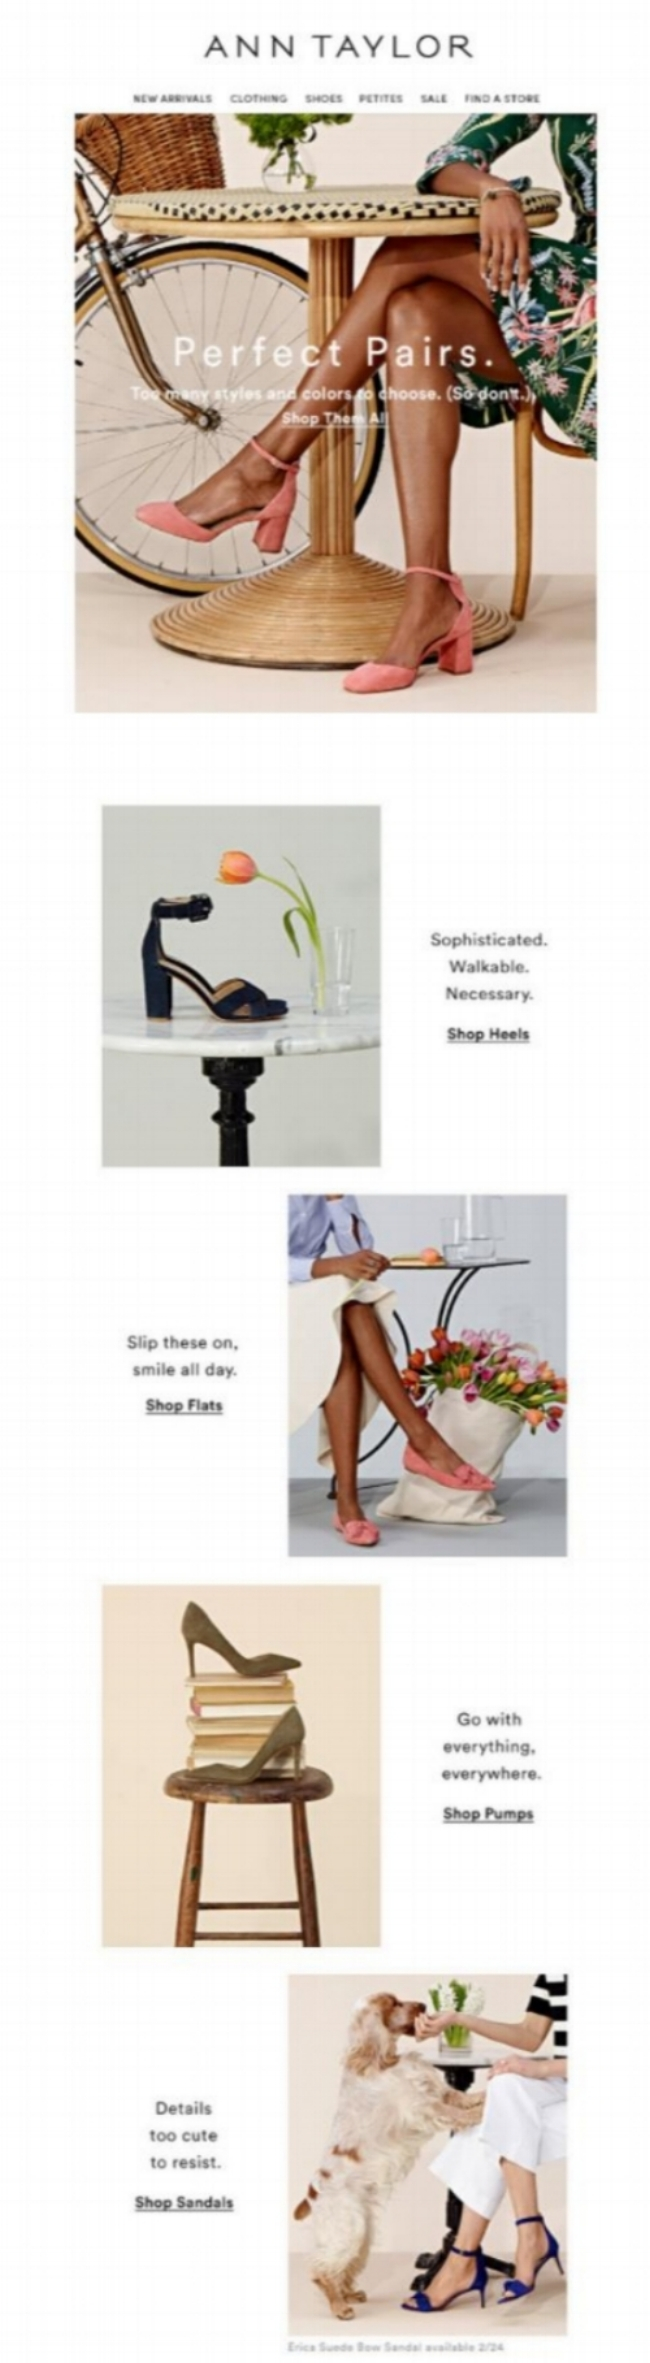 Ann Taylor- Two Words- New Shoes - Milled.jpg